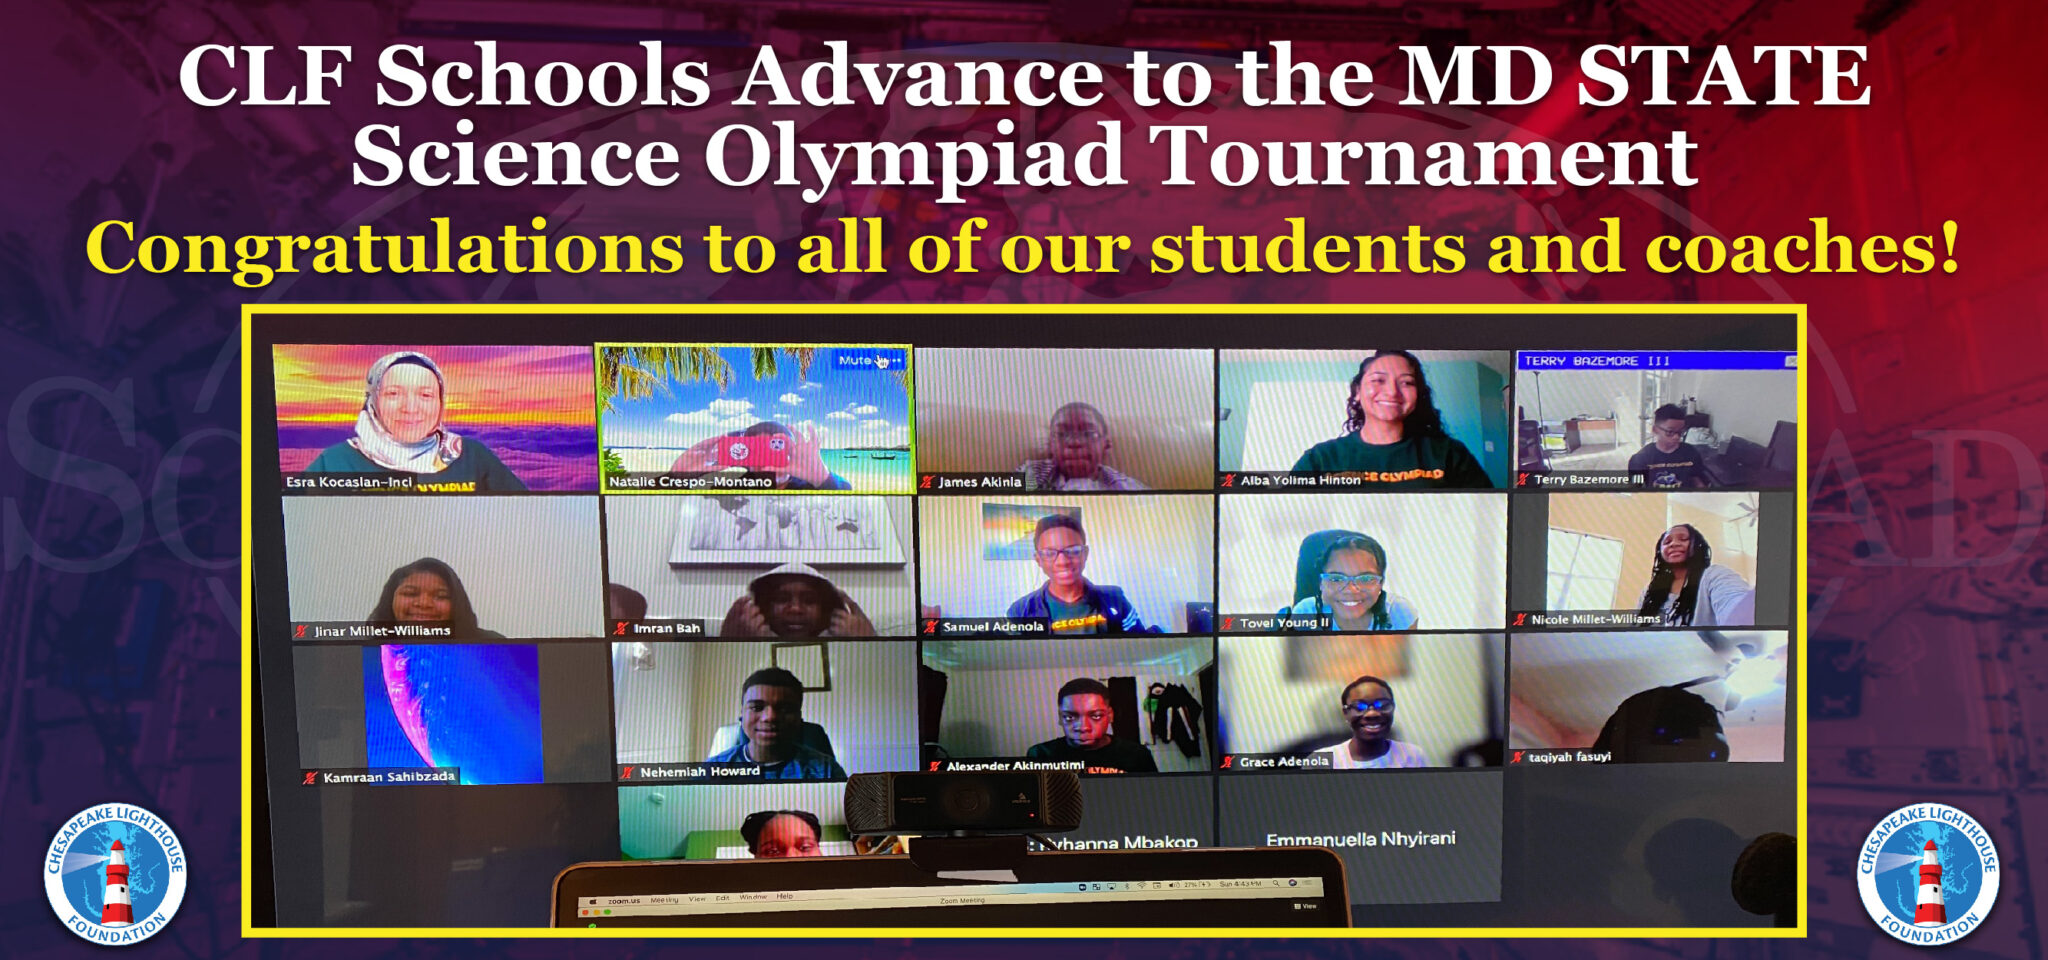 Three CLF Schools Advance to the MD State Science Olympiad Tournament